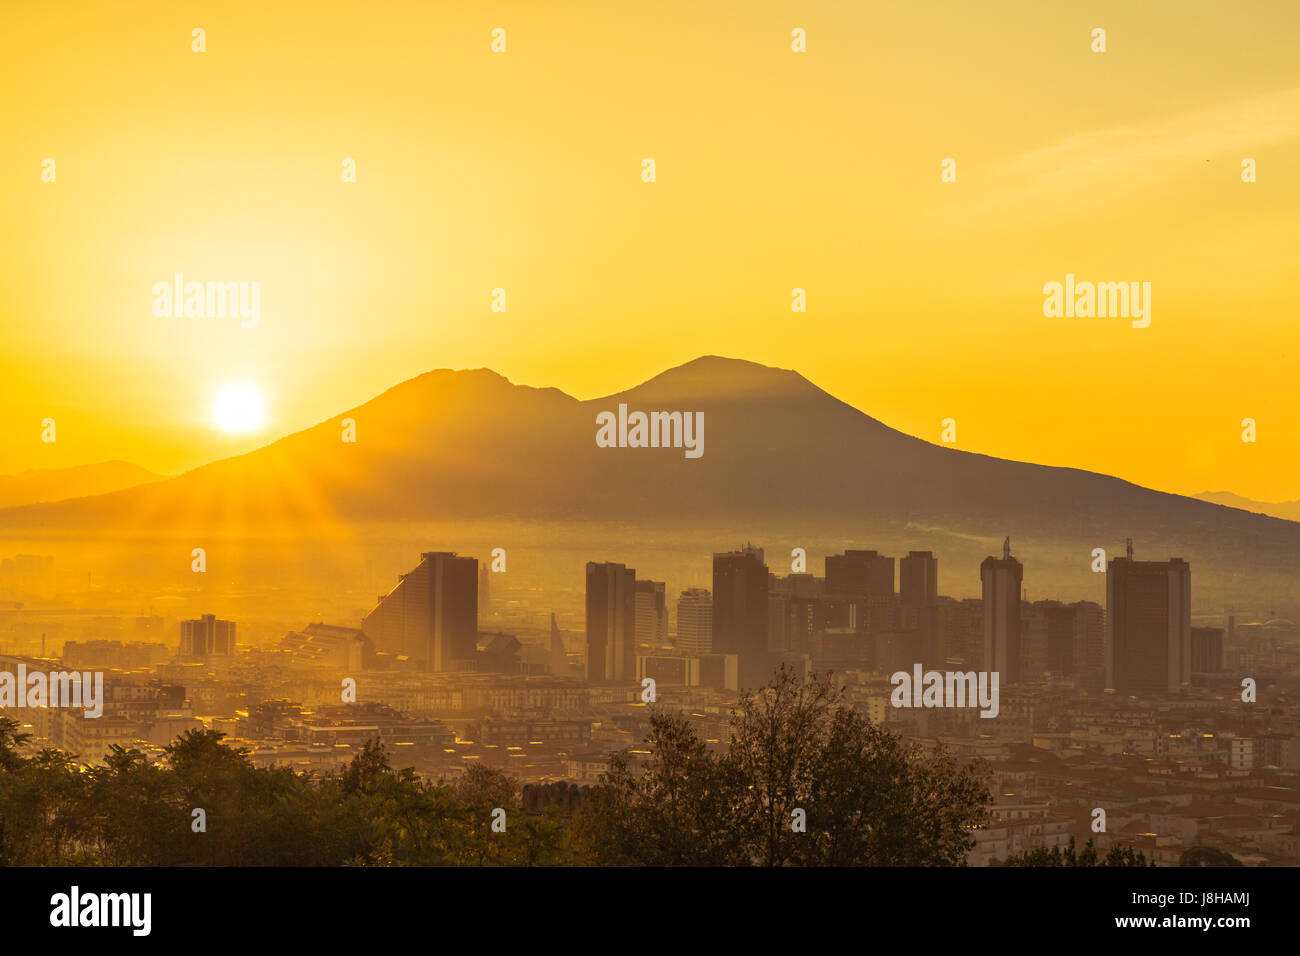 The Sun is rising over the Mount Vesuvius in Naples, Italy Stock Photo